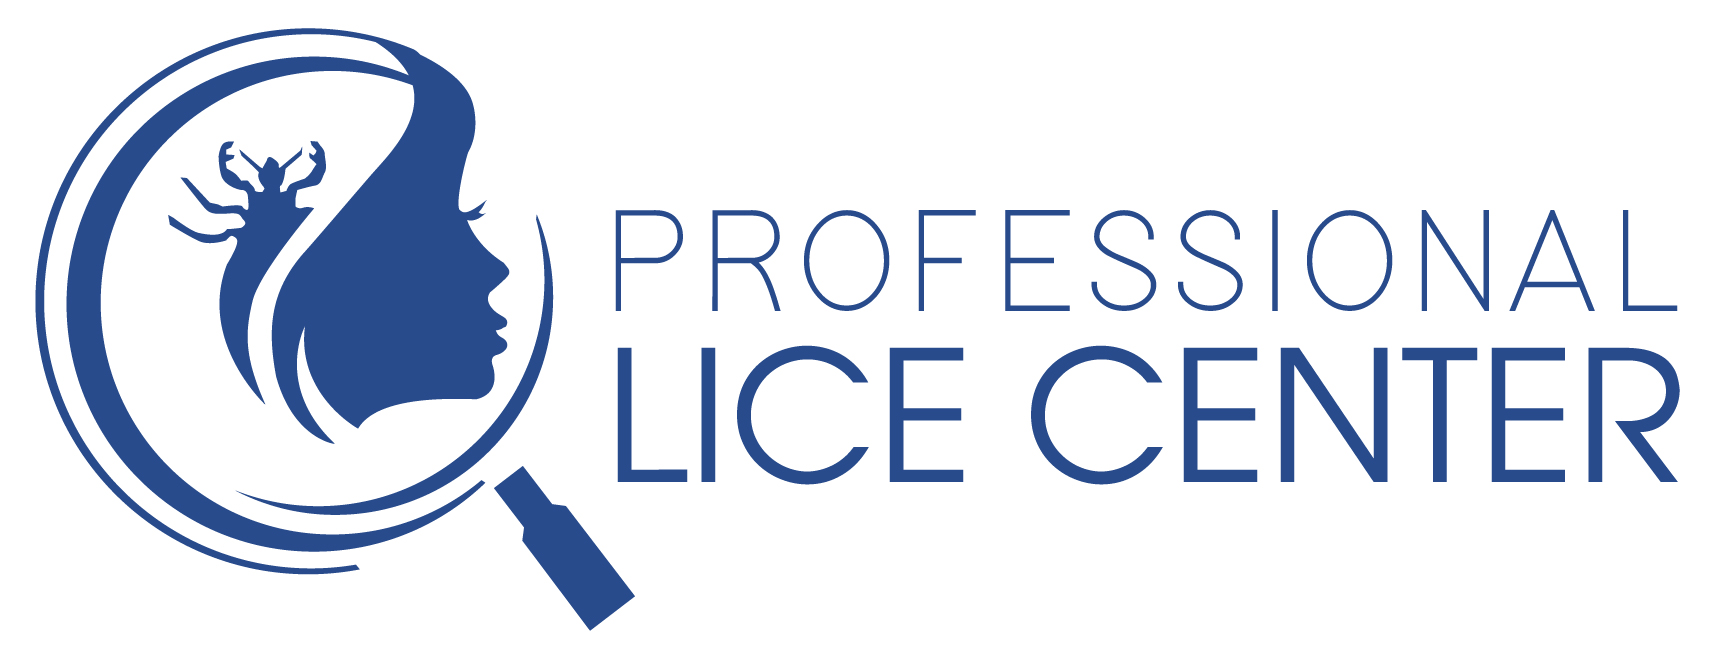 Professional Lice Center LLC